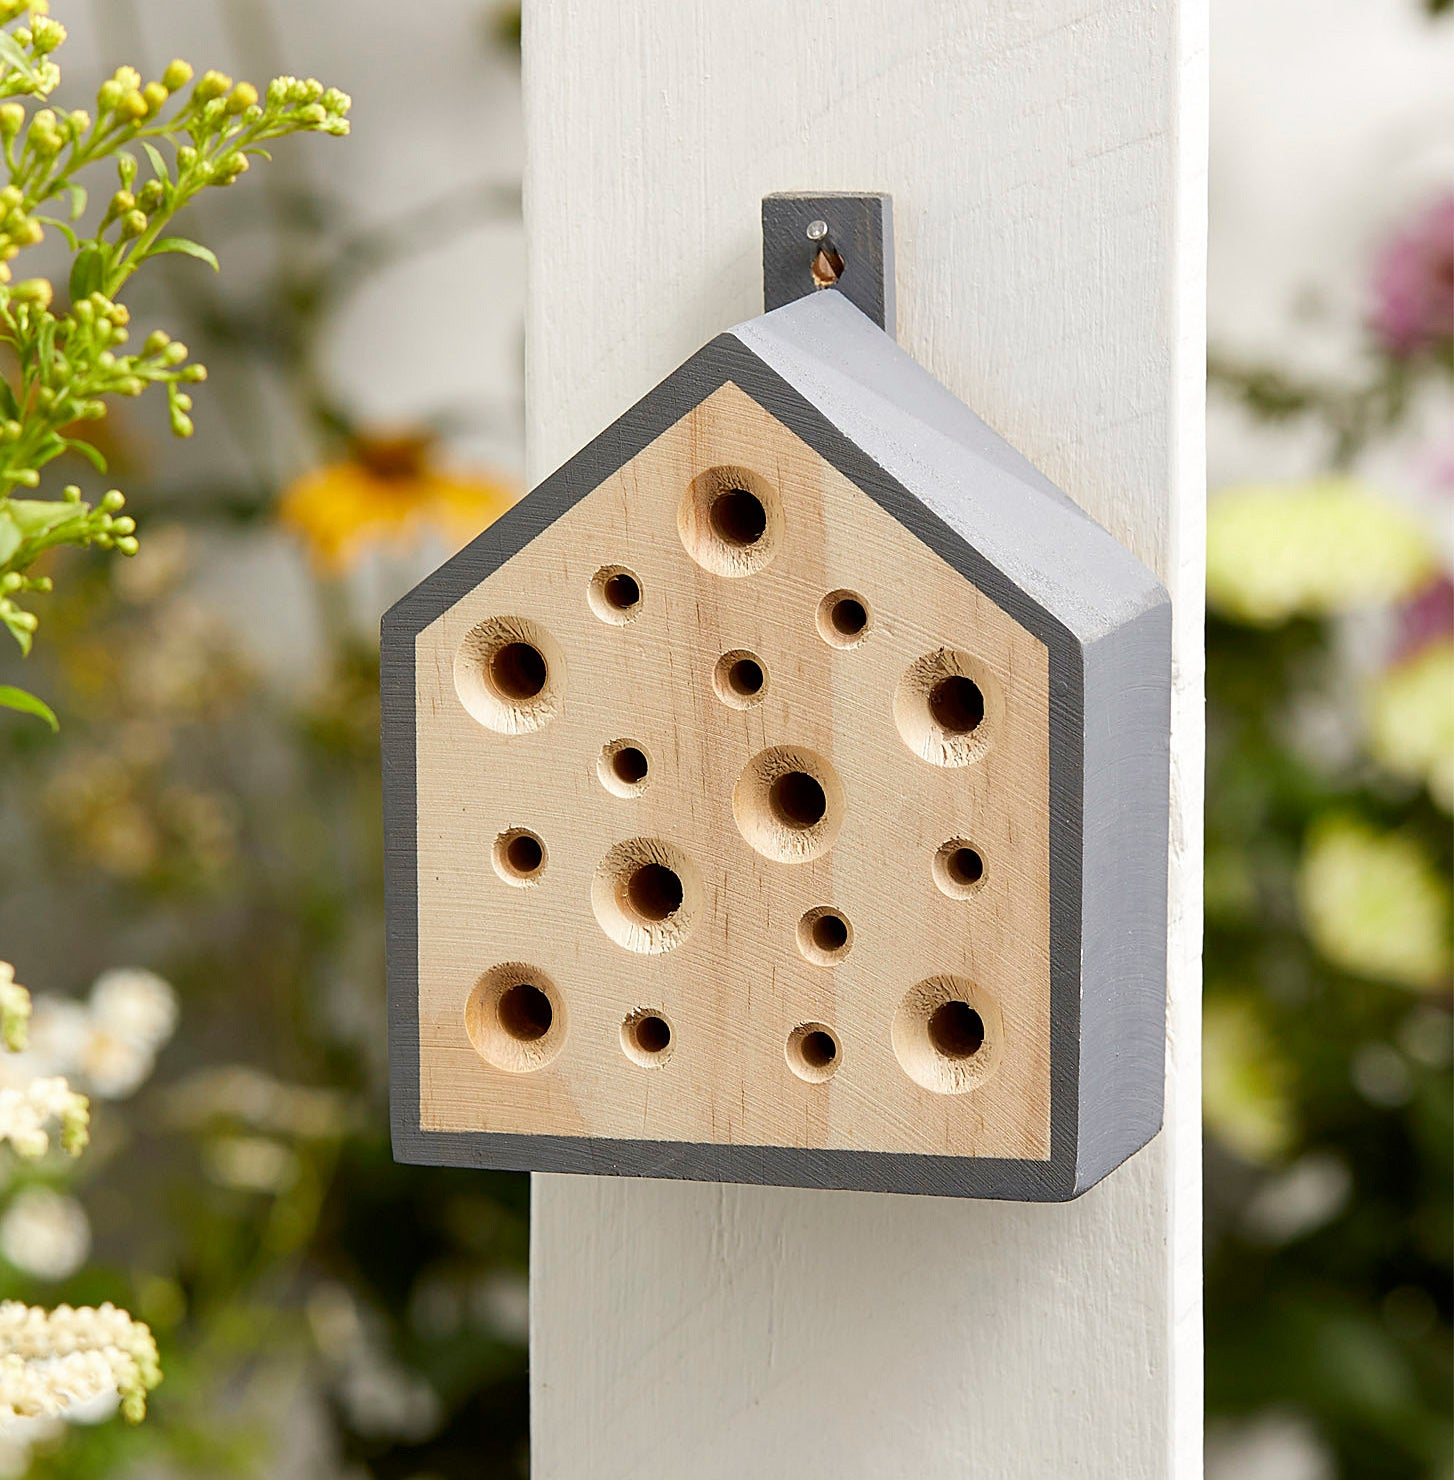 The bee house on an outdoor pillar